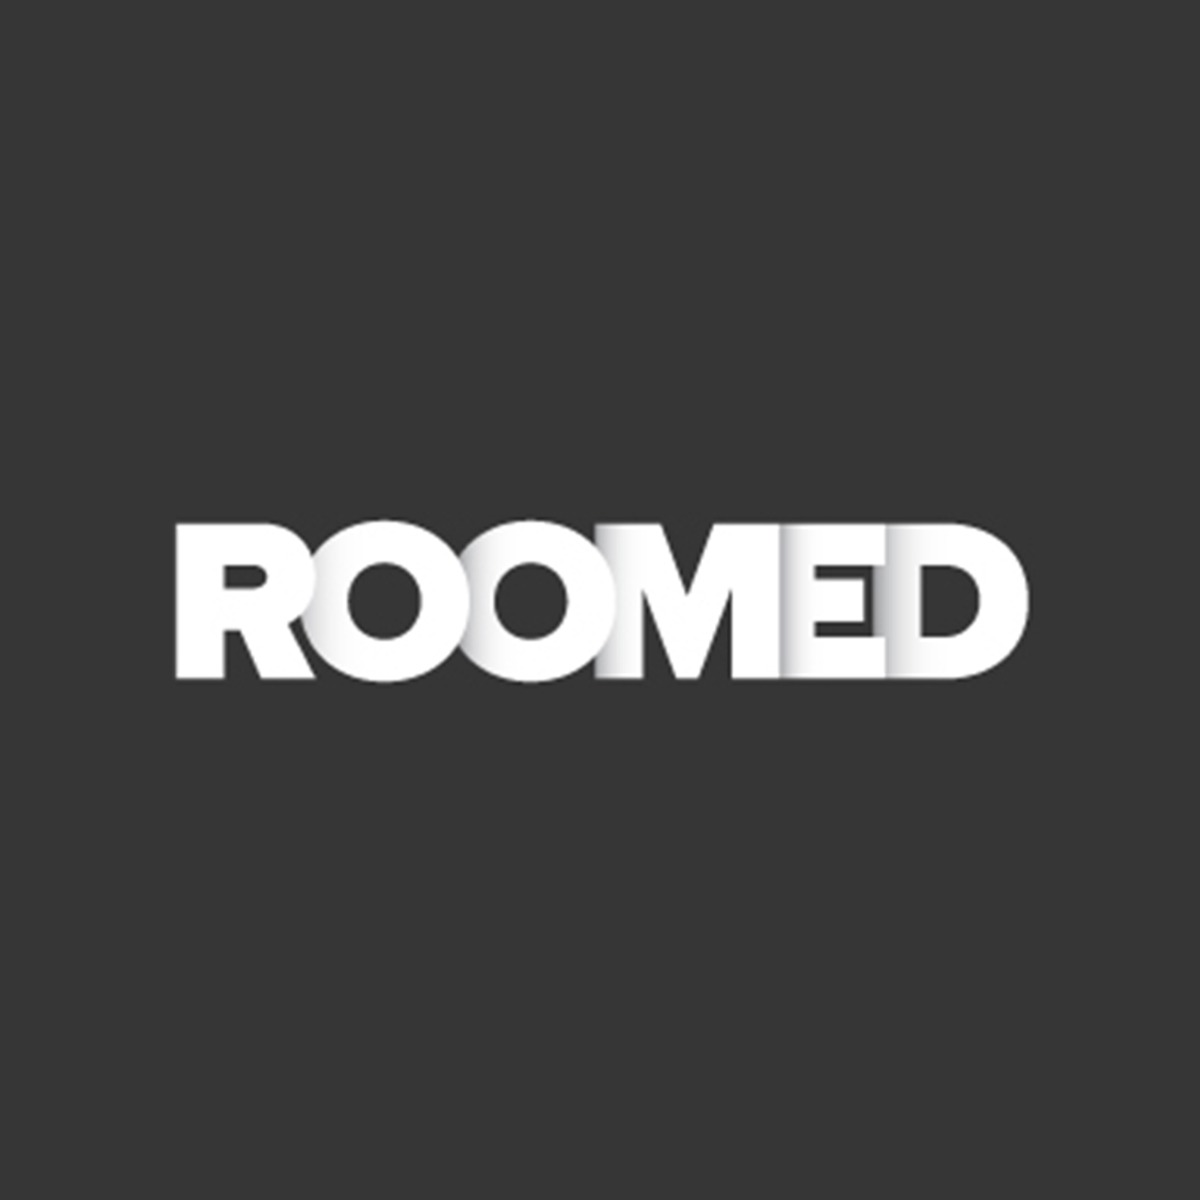 Roomed